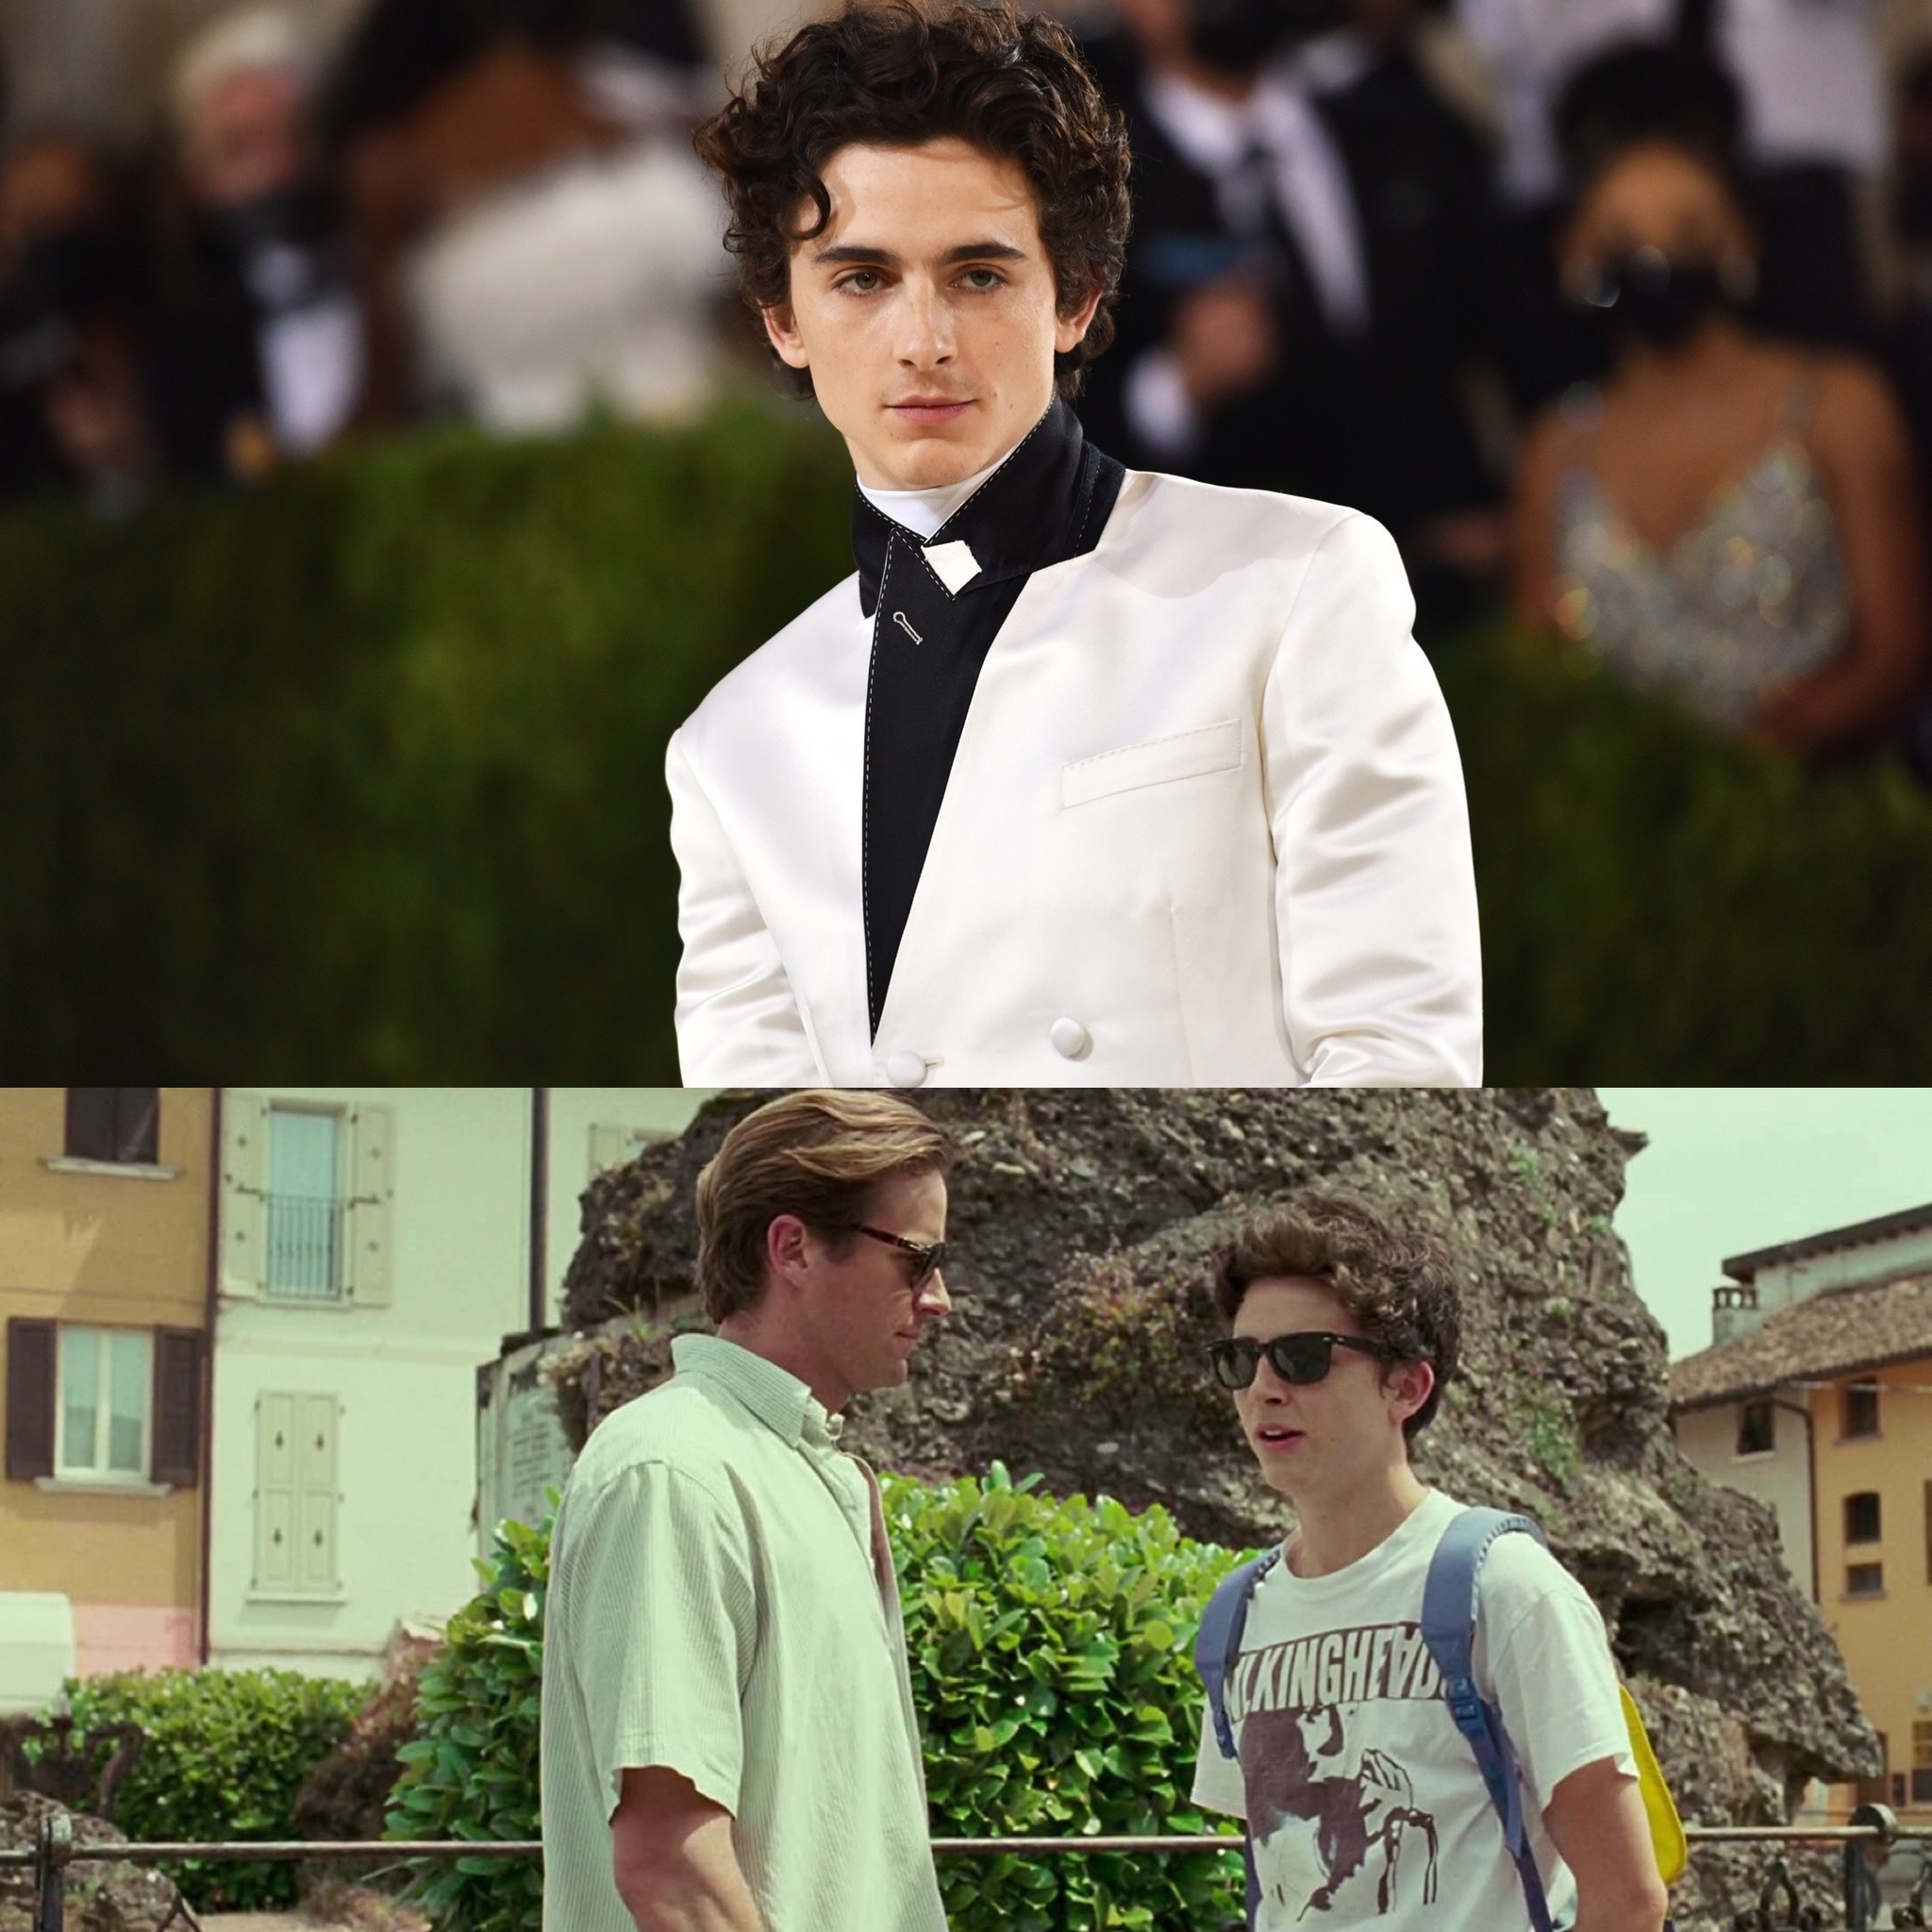 Timothée Chalamet breaks silence on Call Me By Your Name co-star Armie Hammer sexual assault allegations